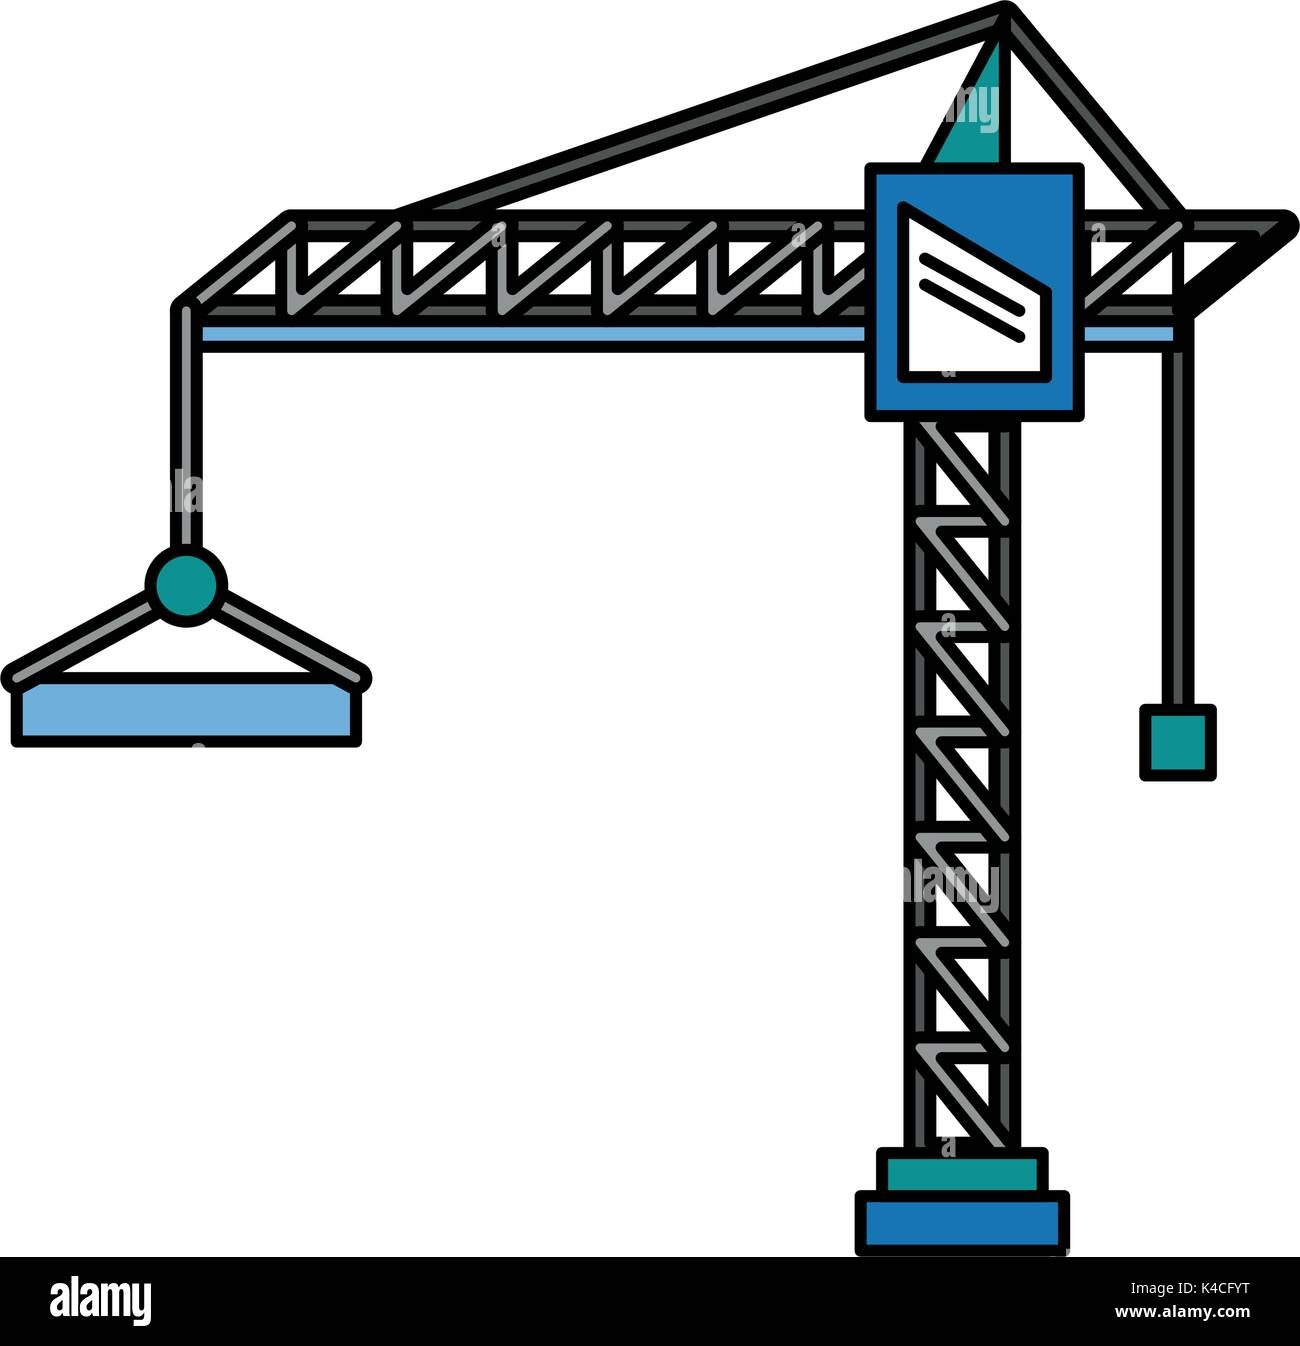 Overhead Bridge Crane Diagram Besides Terex Cranes Wiring Diagram In